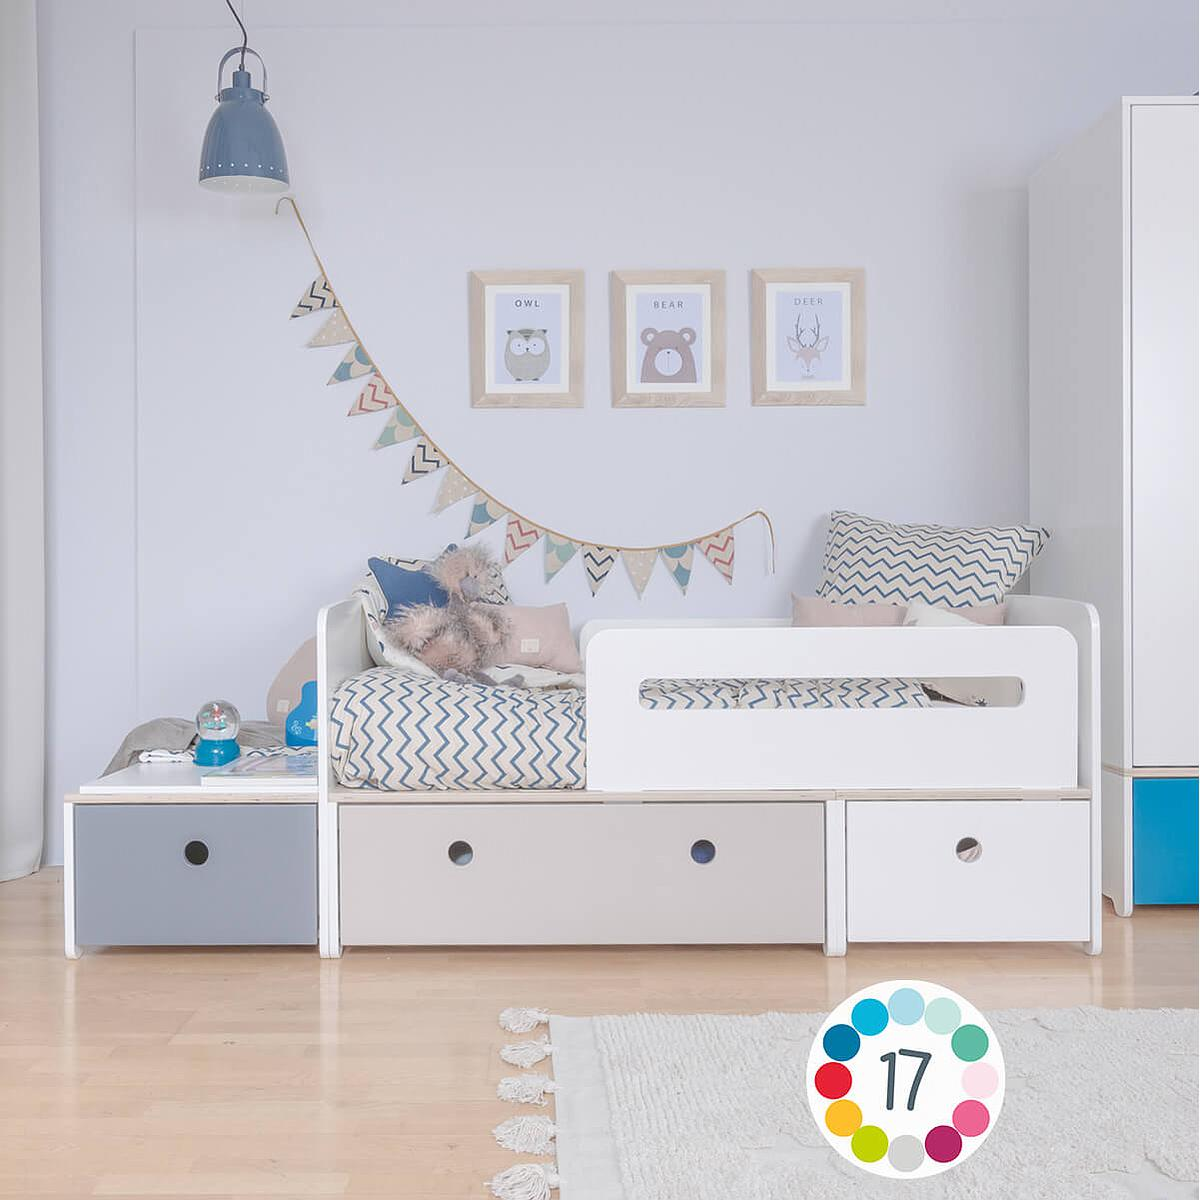 Lit junior évolutif 90x150/200cm COLORFLEX Abitare Kids warm grey-mint-paradise blue